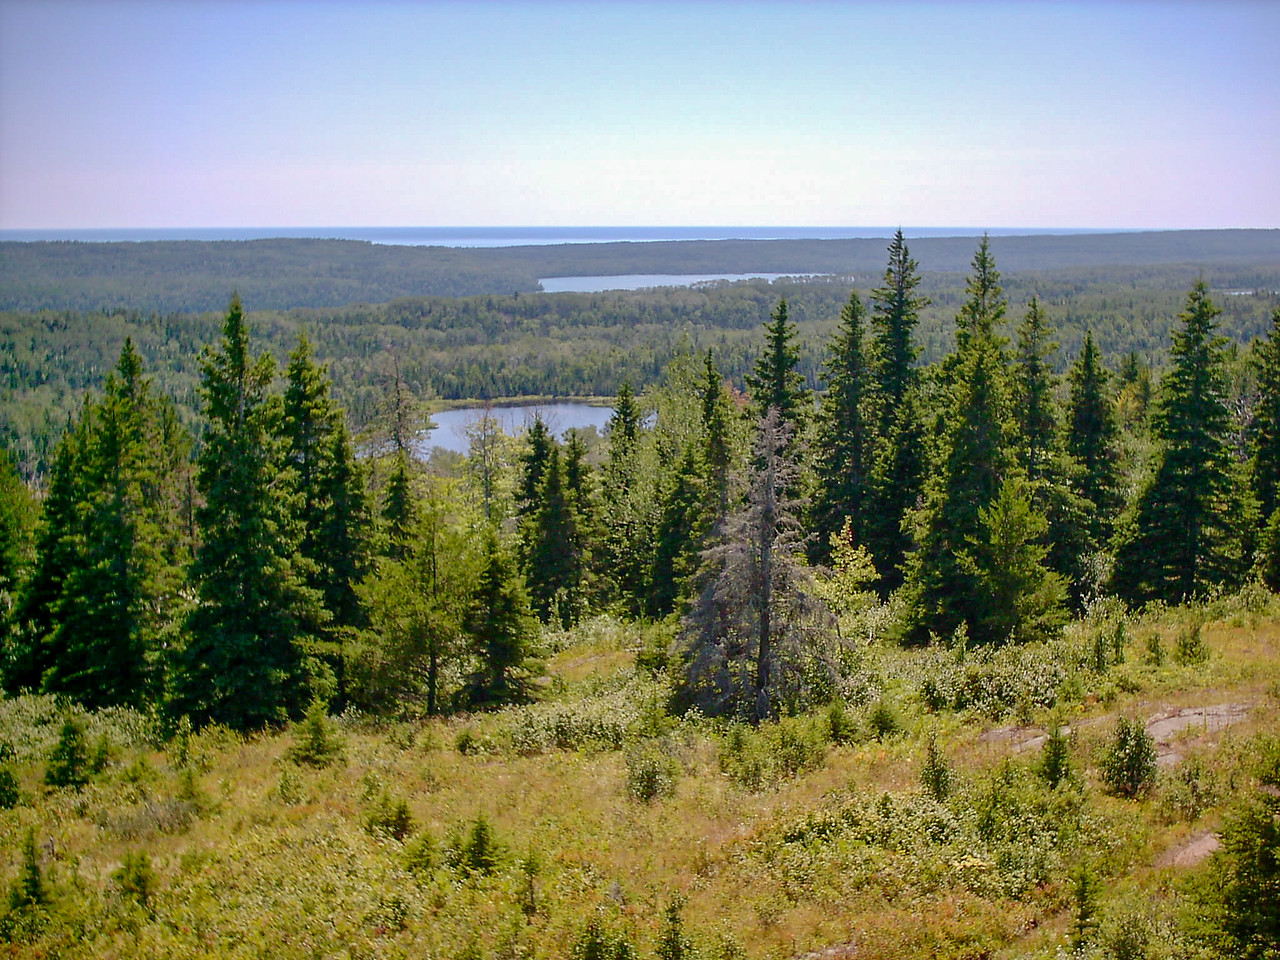 Day 2 - Mt. Ojibway (view SSW) - Lakes Ojibway (near) and Benson (far) are visible in this view of Isle Royale's interior from Mt. Ojibway.